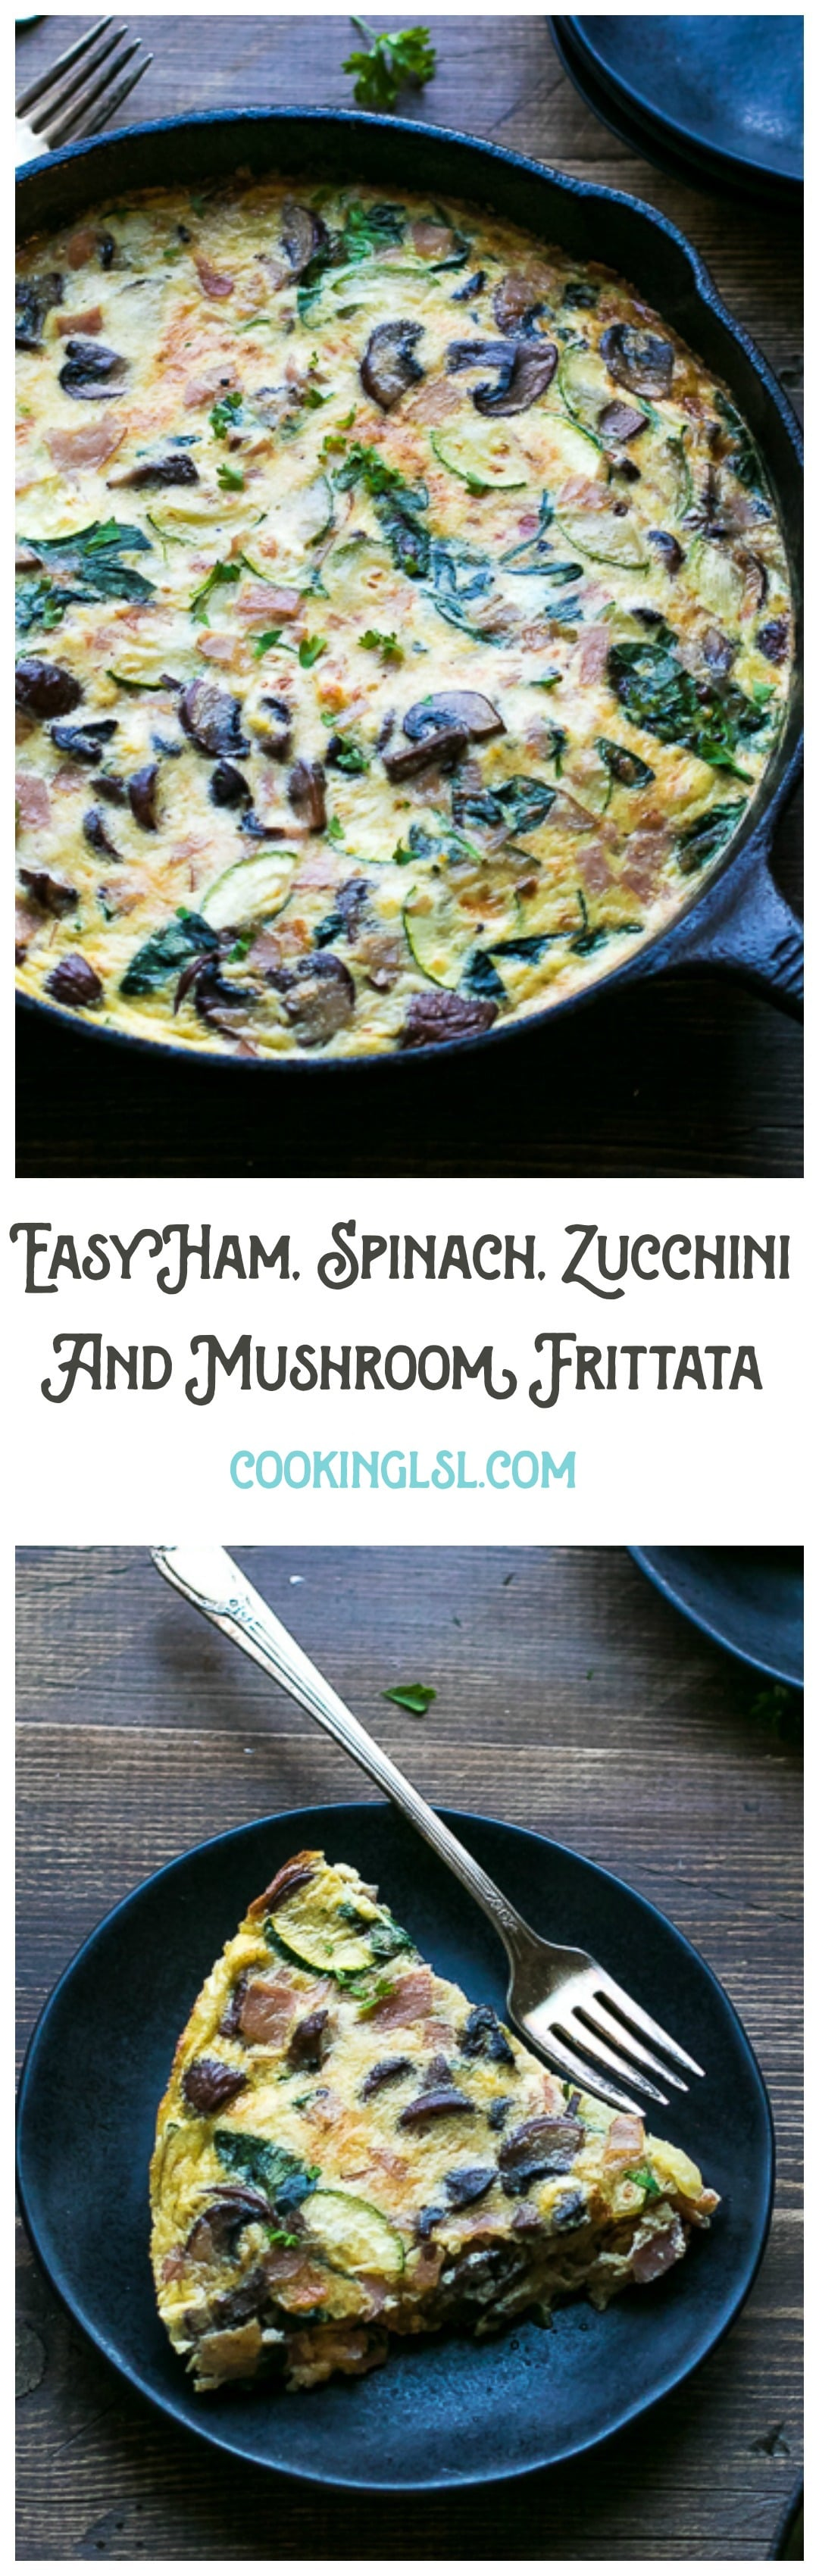 Easy-Ham-Spinach-Zucchini-And-Mushroom-Frittata-Recipe